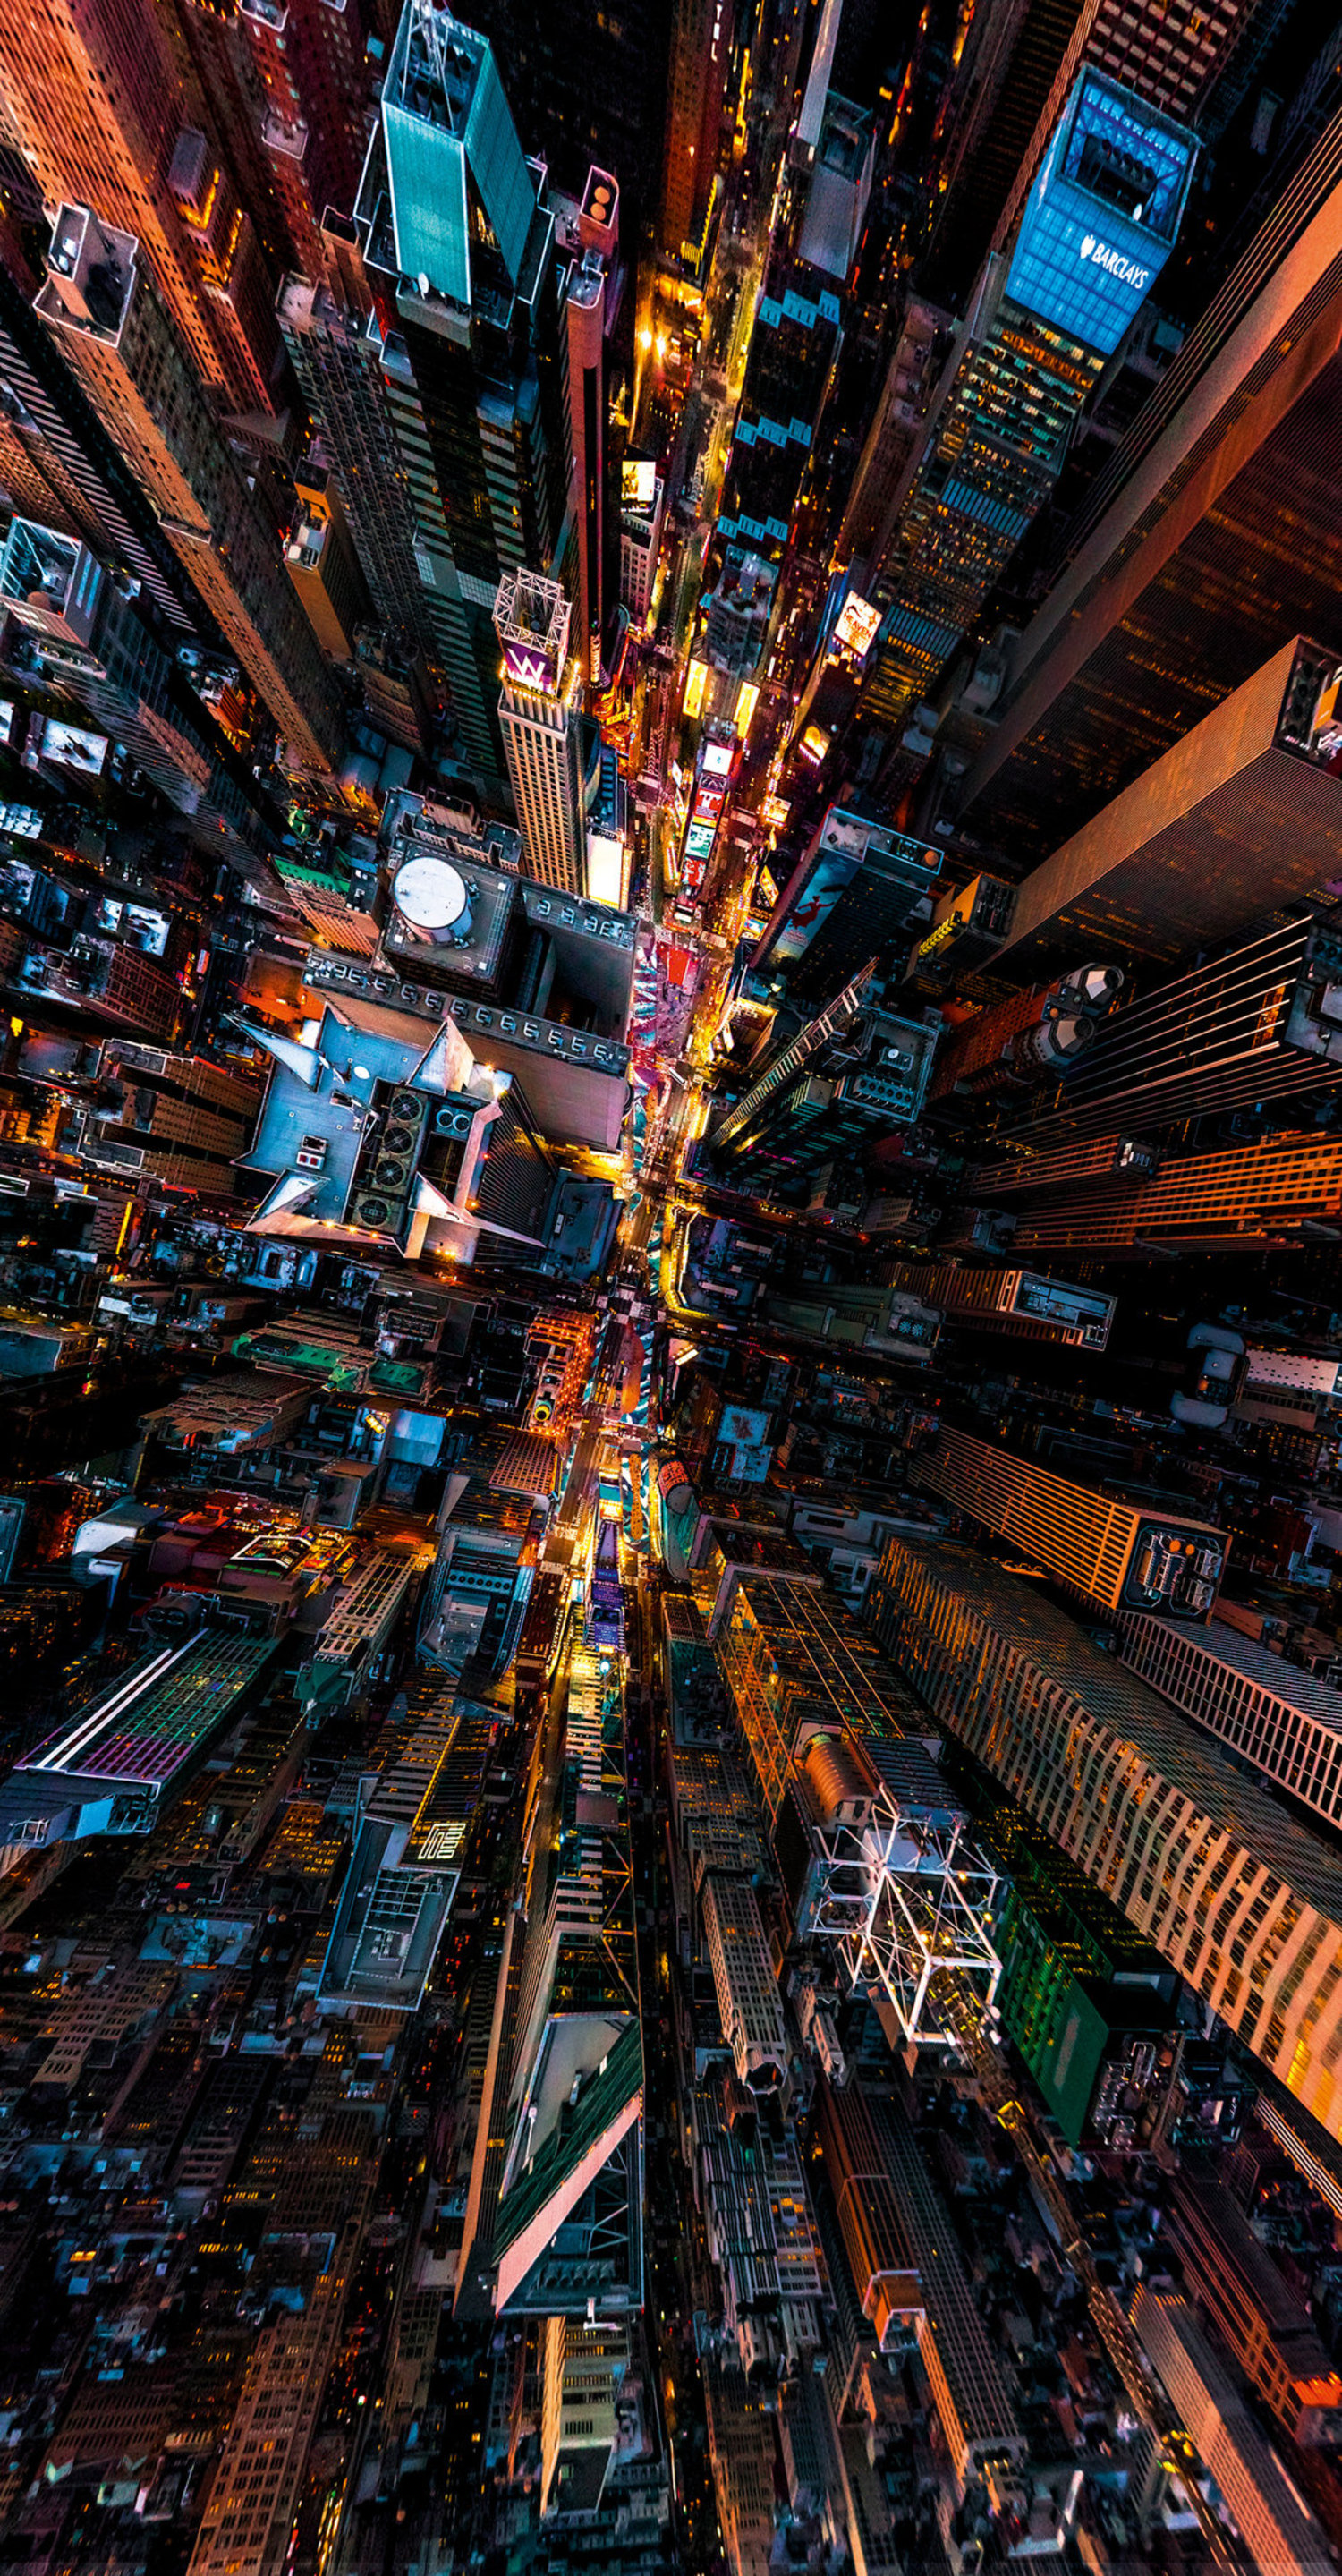 Colourful Wallpaper Iphone X Check Out This Stunning Collection Of New York City Aerial